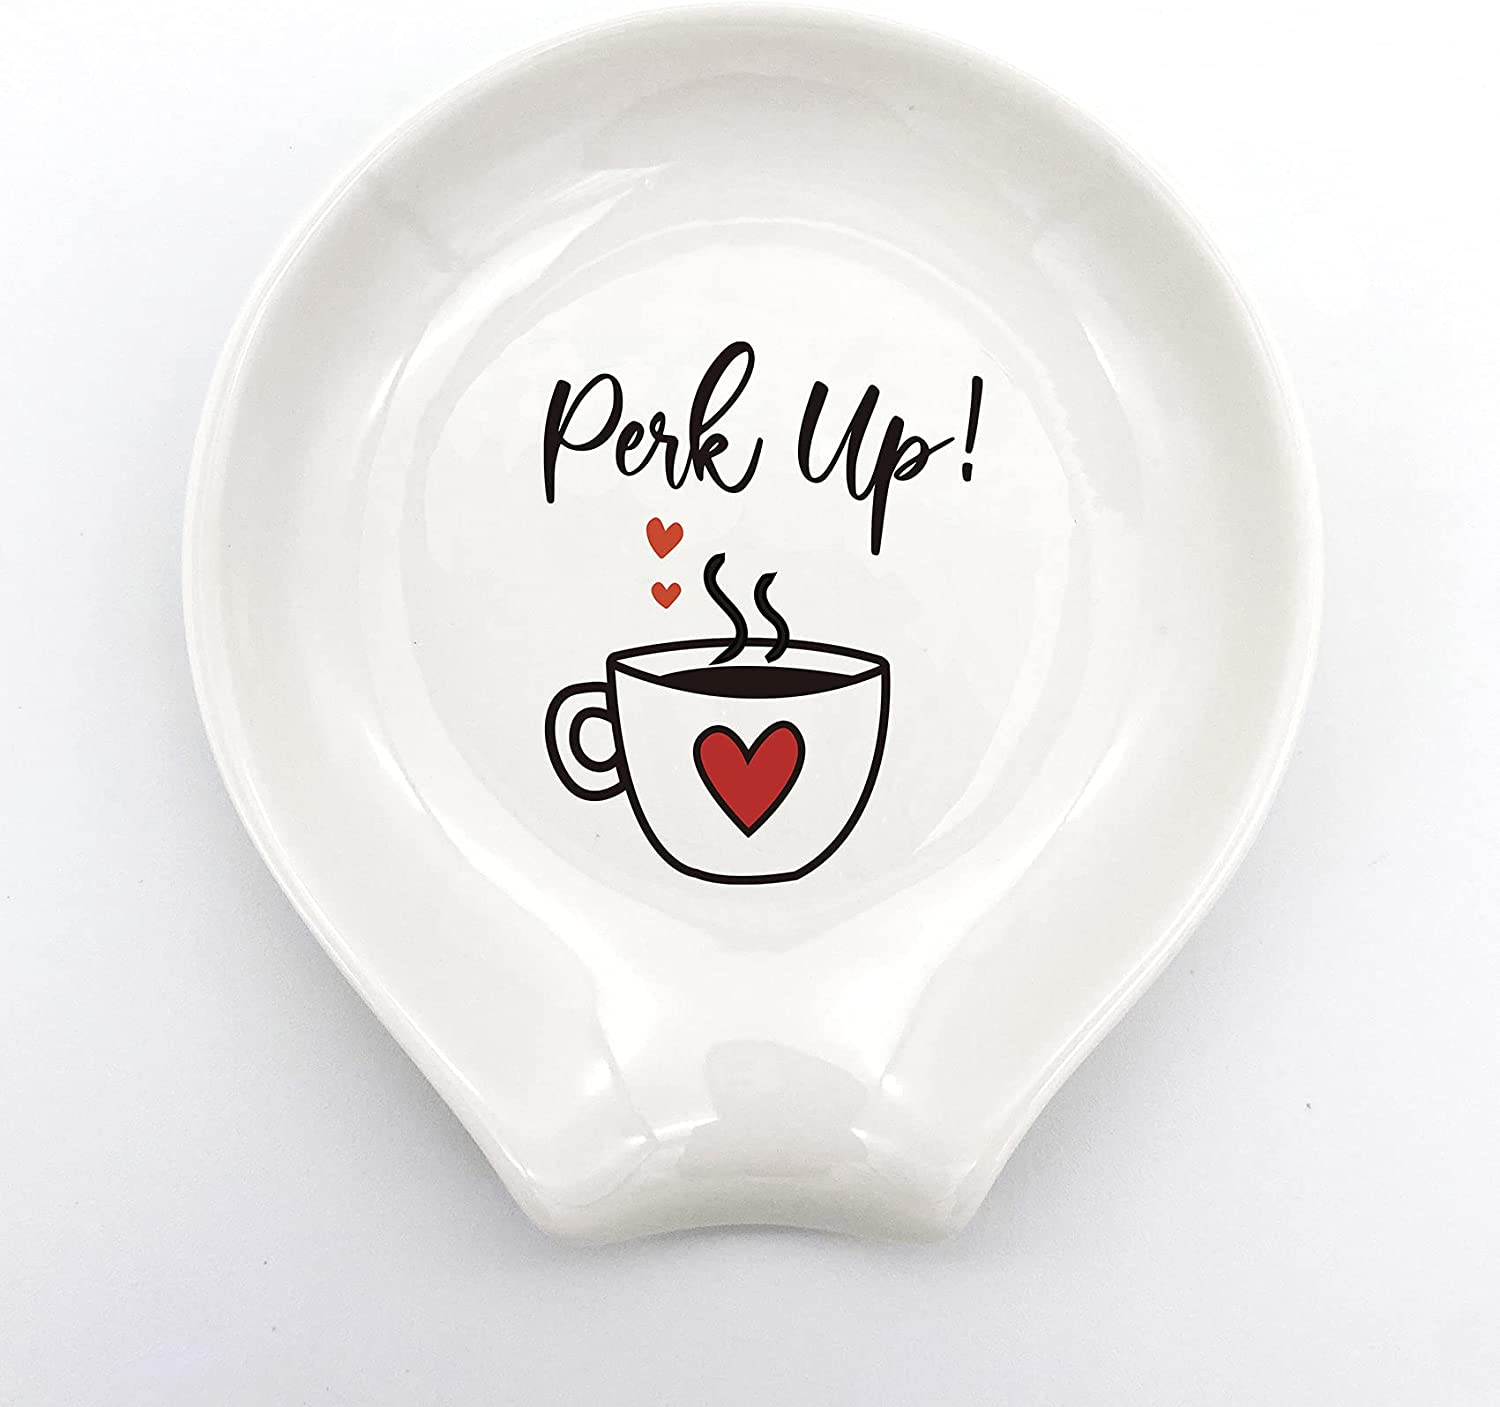 family Kitchen Funny White Ceramic Rests Up San Diego Mall Perk Max 58% OFF Spoon